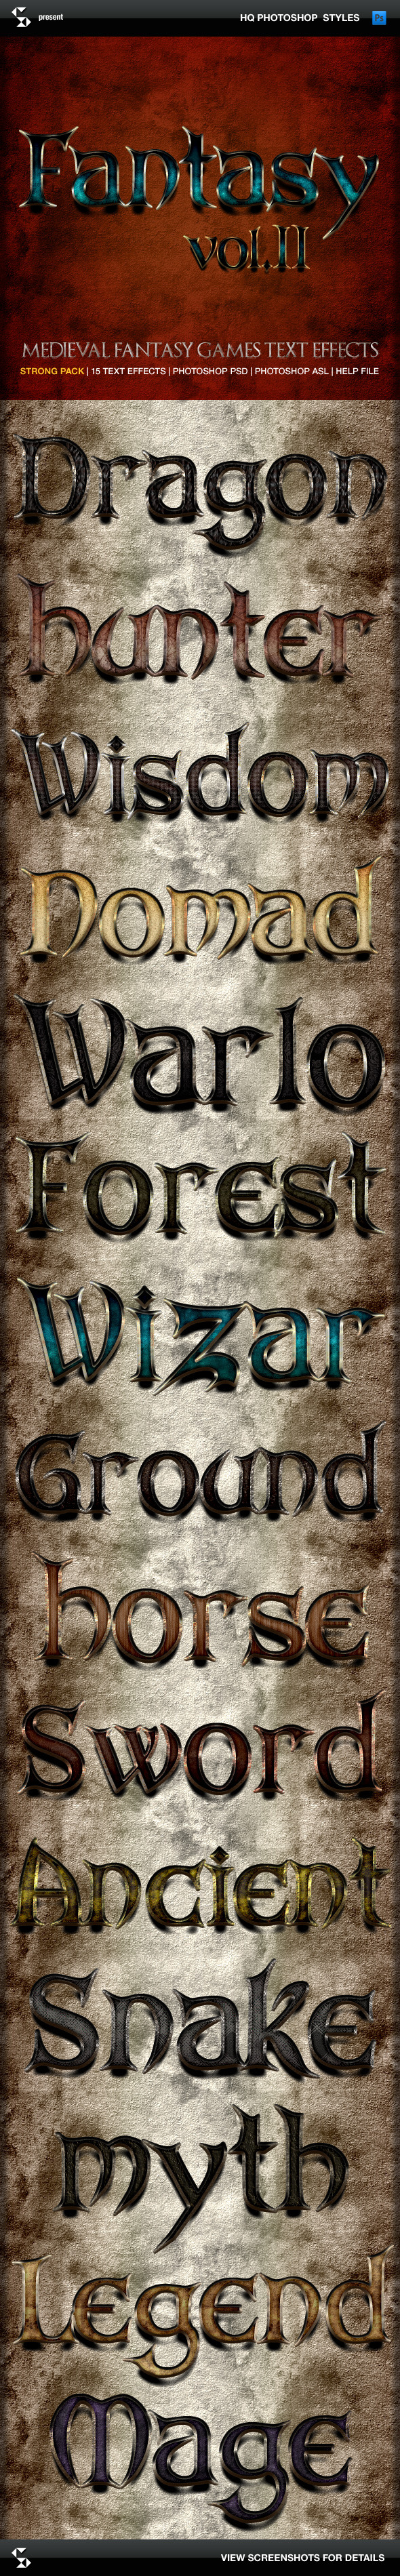 Medieval and fantasy games text effects 2 - Text Effects Styles